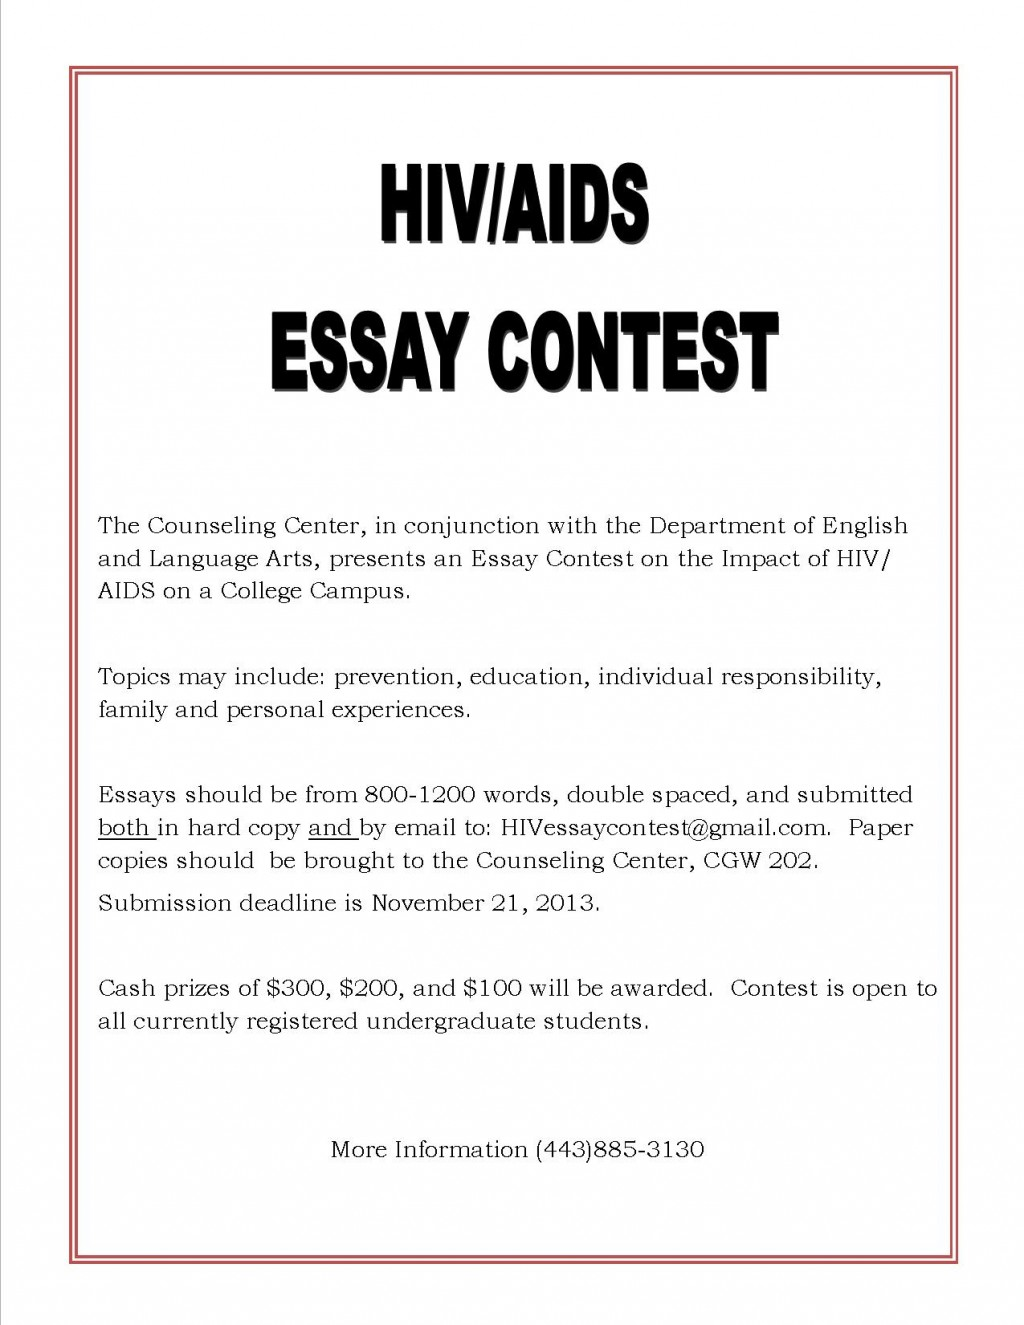 006 Essay Example Hiv Aids Essays Flyer Tamil Awareness Epidemic In Africa Hivaids On Pediatric About Research Phenomenal Hindi Pdf Topics Large